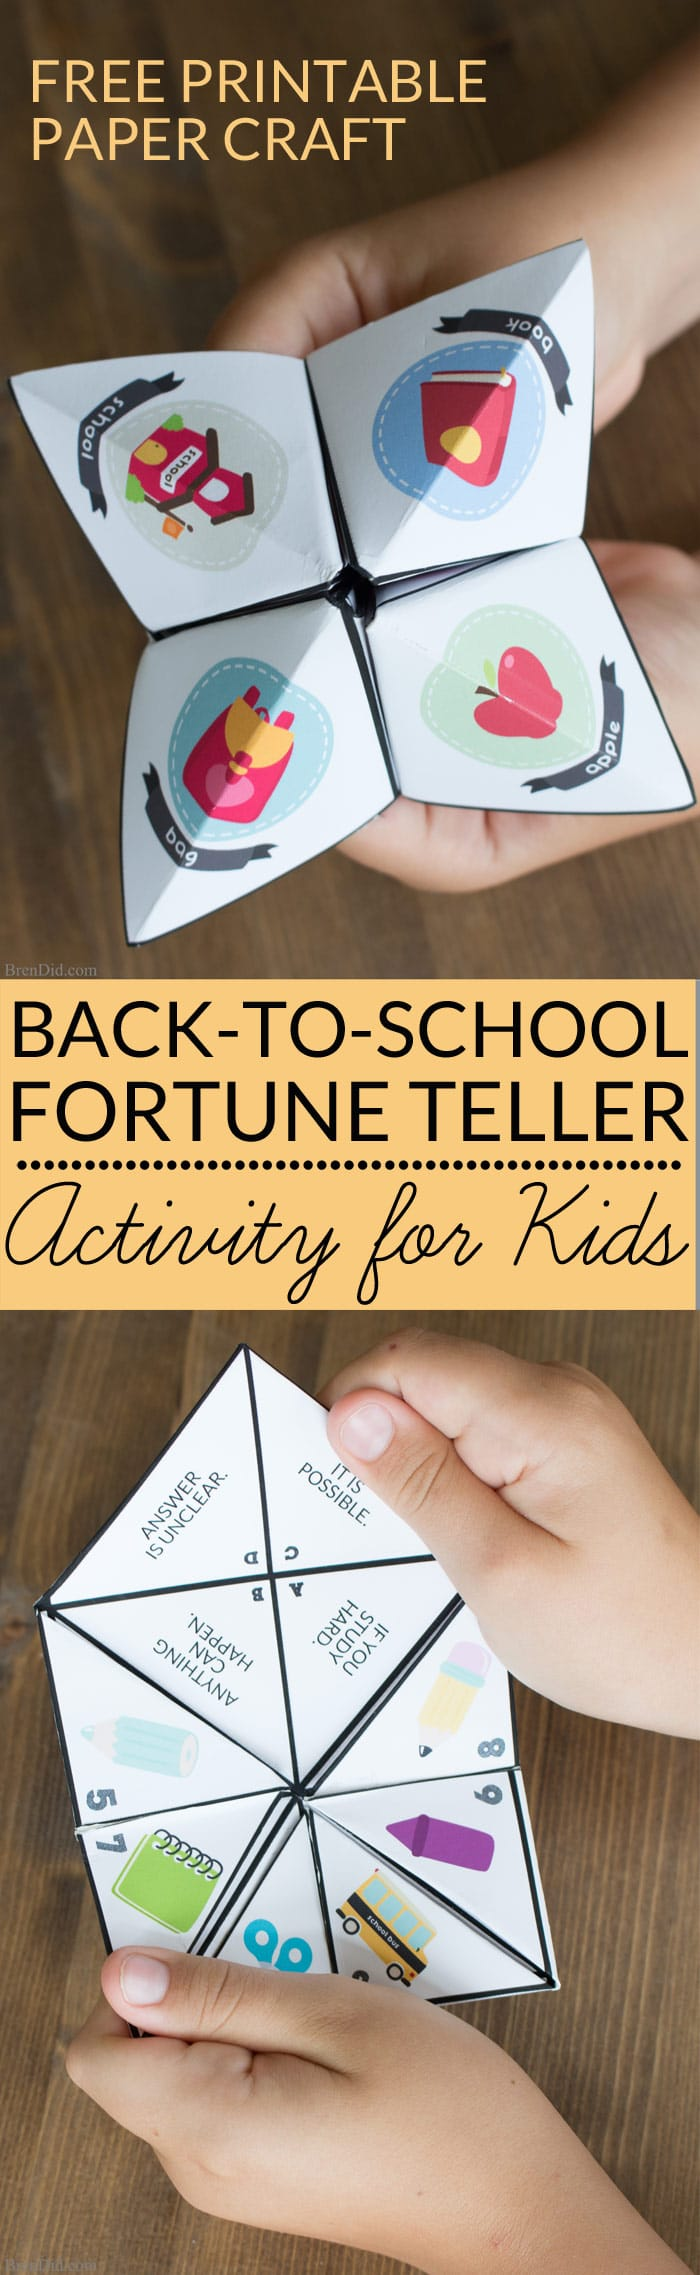 Back to school paper fortune teller, conversation starting game for students and adults. Free printable cootie catchers (paper fortune tellers) are an easy back to school activity for kids.